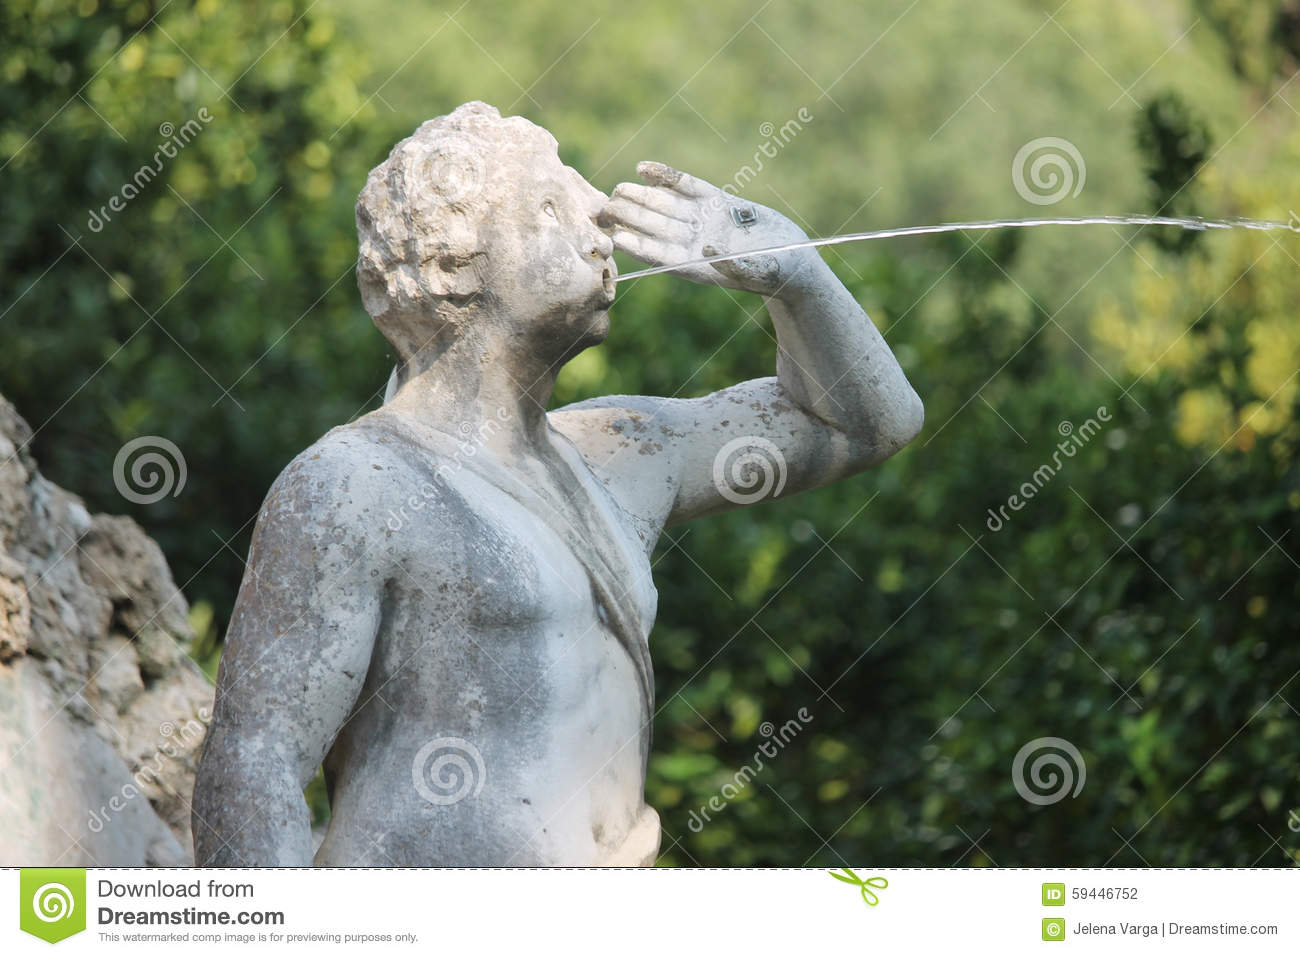 Water fountains with statues - Fountain